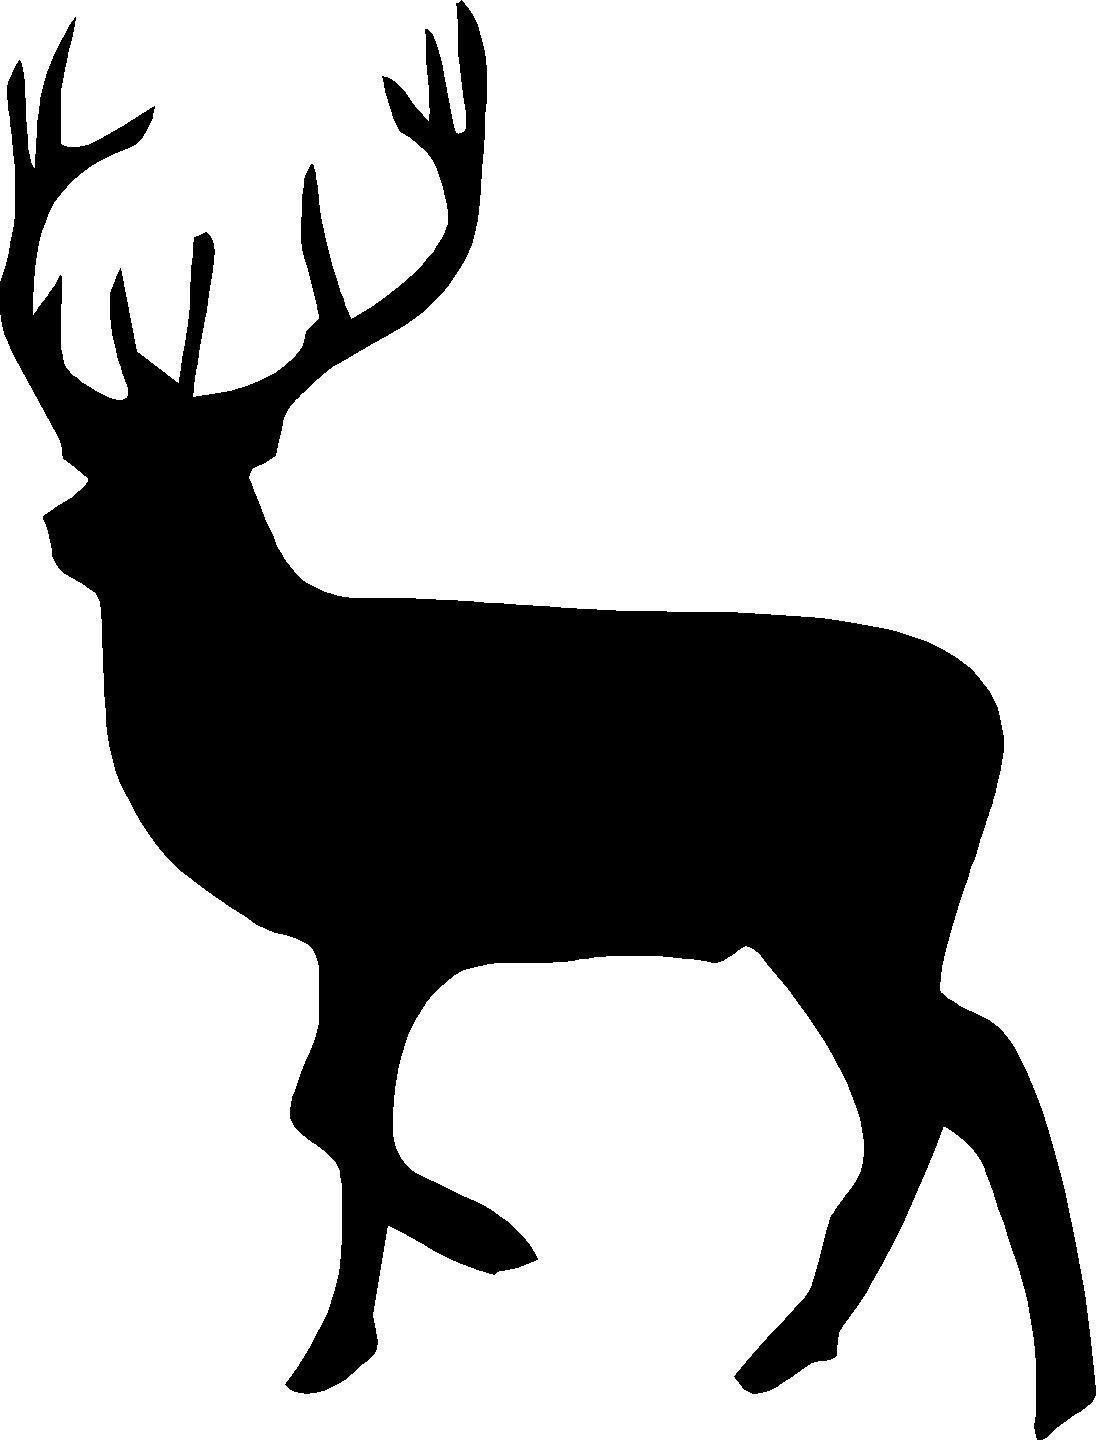 1096x1440 Free Deer Silhouette Download Clip Art On Fair Clipart